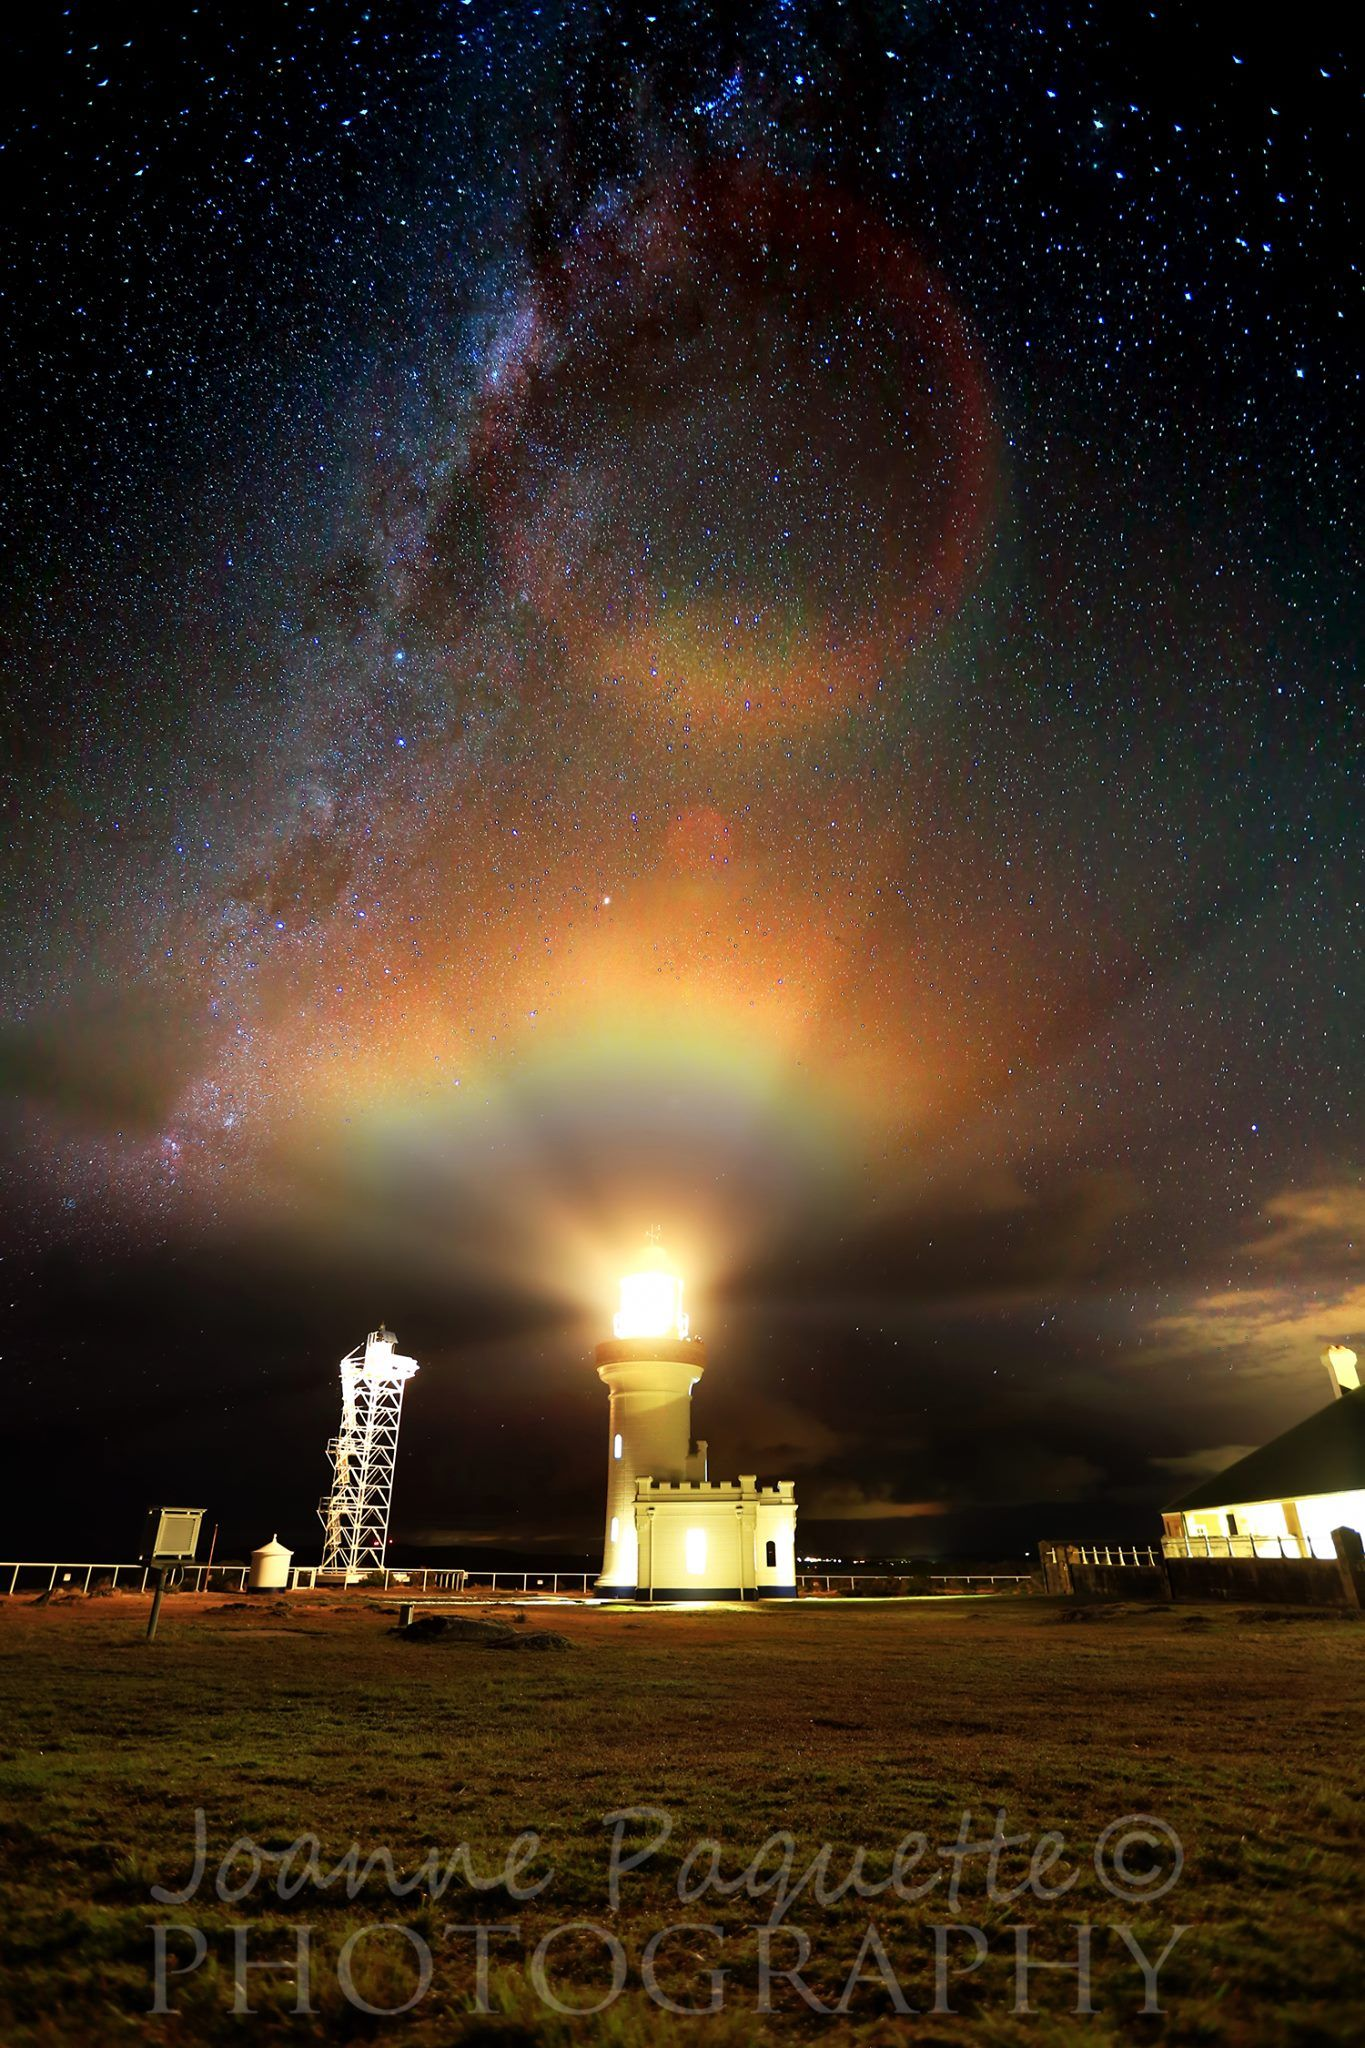 Point perpendicular lighthouse jervis bay photo by joanne point perpendicular lighthouse jervis bay photo by joanne paquette photography the night sky junglespirit Image collections